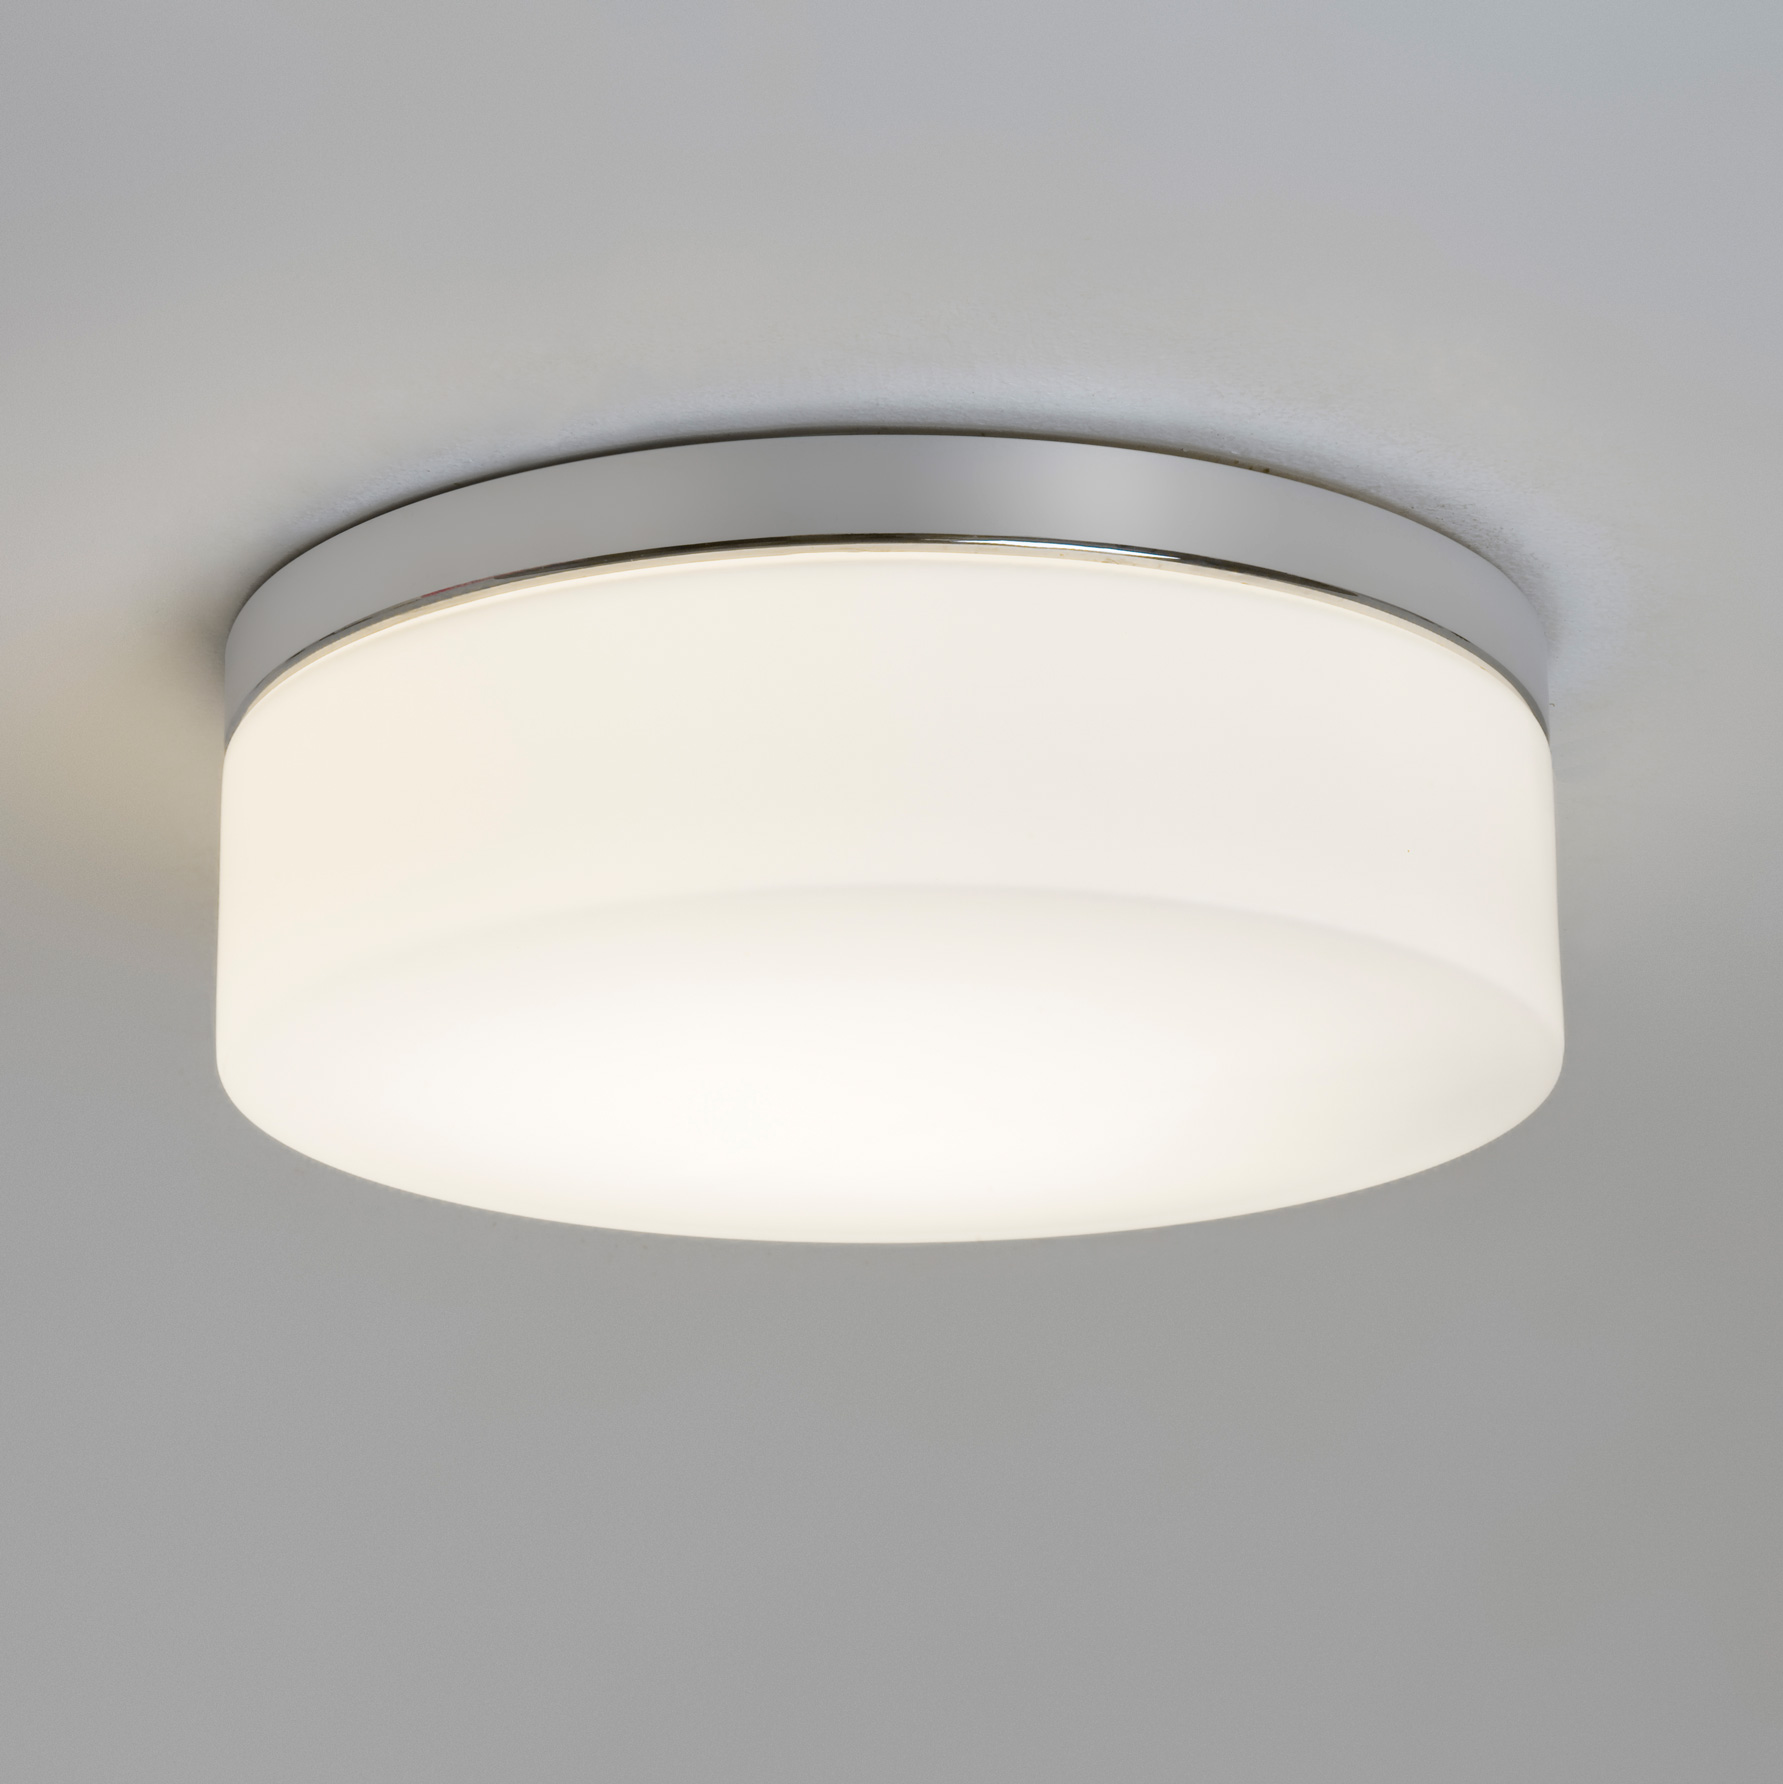 ASTRO Sabina round circular IP44 bathroom ceiling light chrome glass 60W E27 & ASTRO Sabina round circular IP44 bathroom ceiling light chrome ... azcodes.com